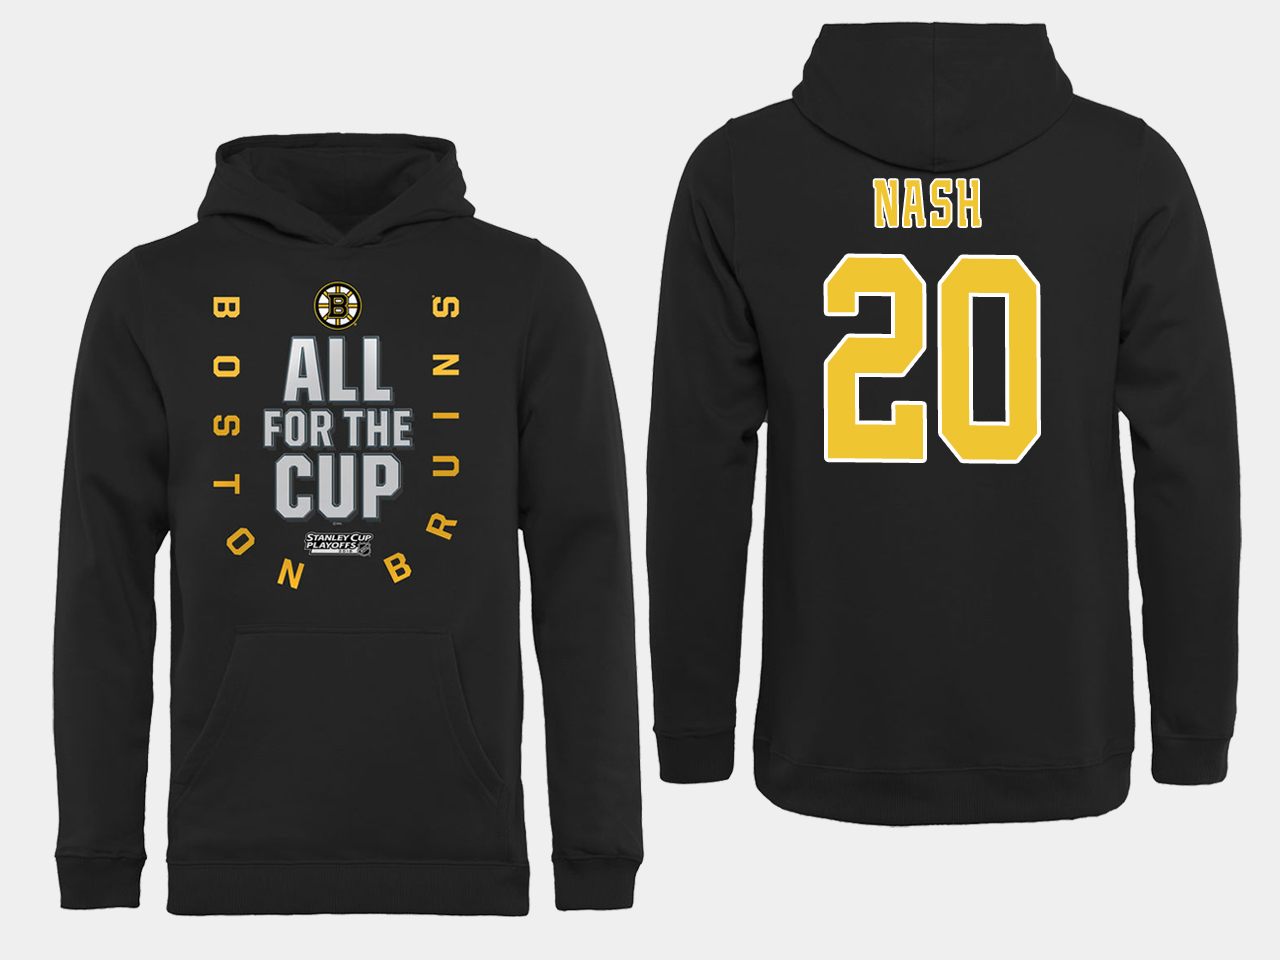 NHL Men Boston Bruins 20 Nash Black All for the Cup Hoodie